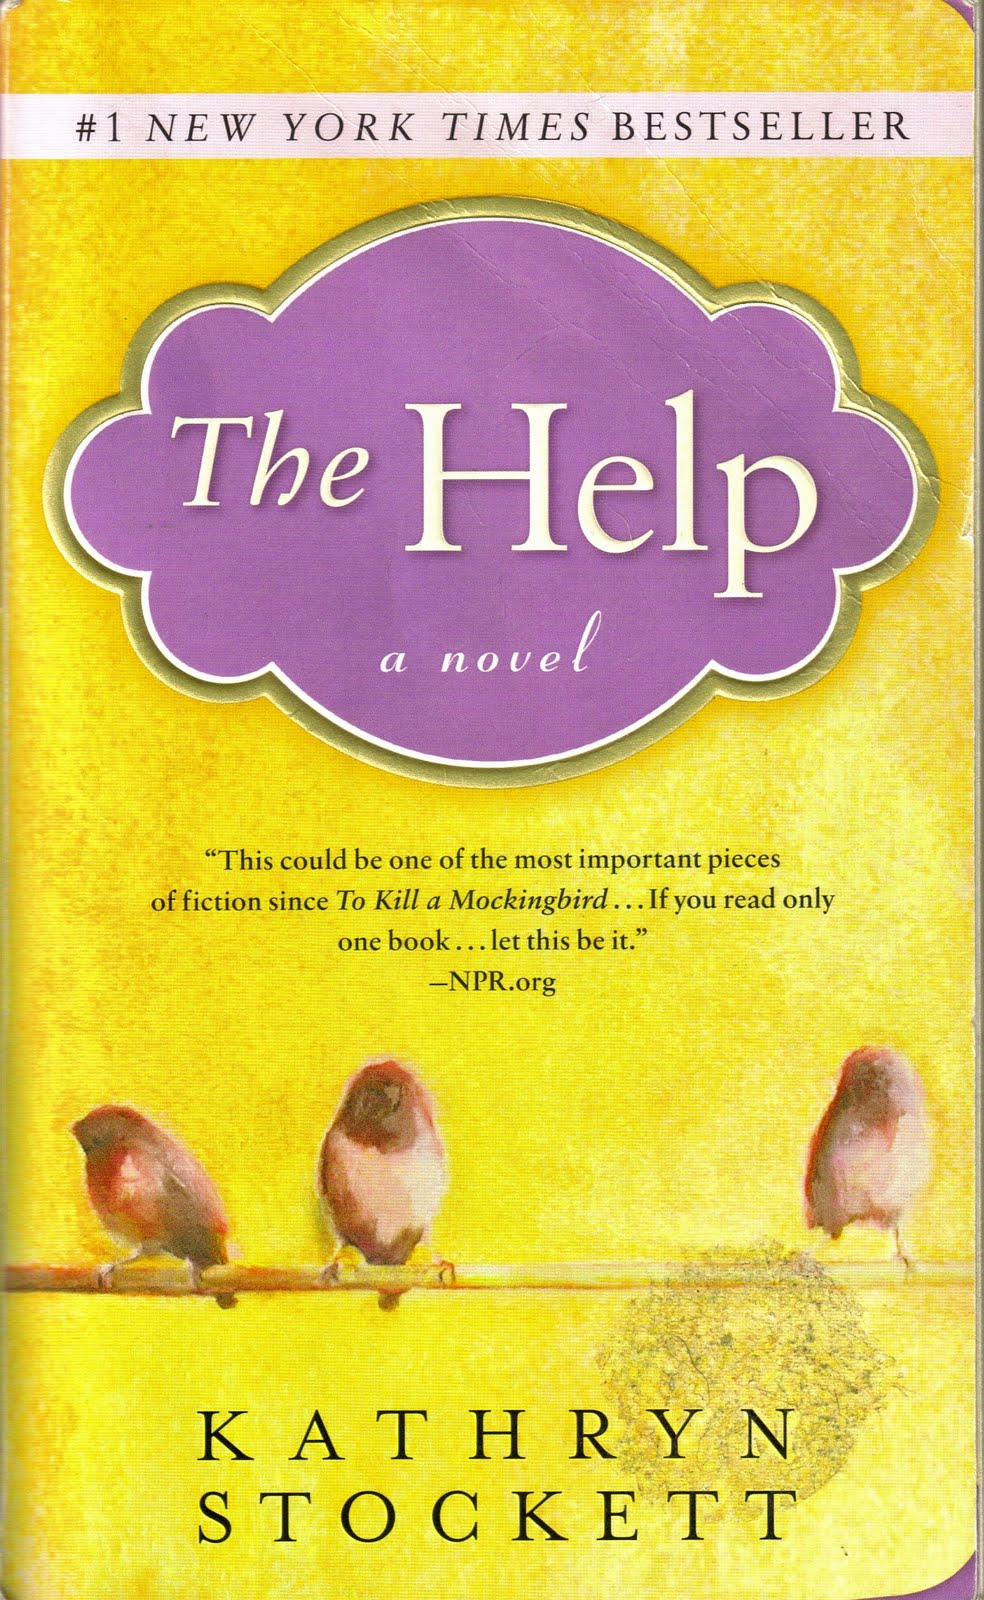 the help by kathryn stockett essay Pay people for writing papers the help by kathryn stockett essay phd dissertation archive health management occupational phd safety thesis.